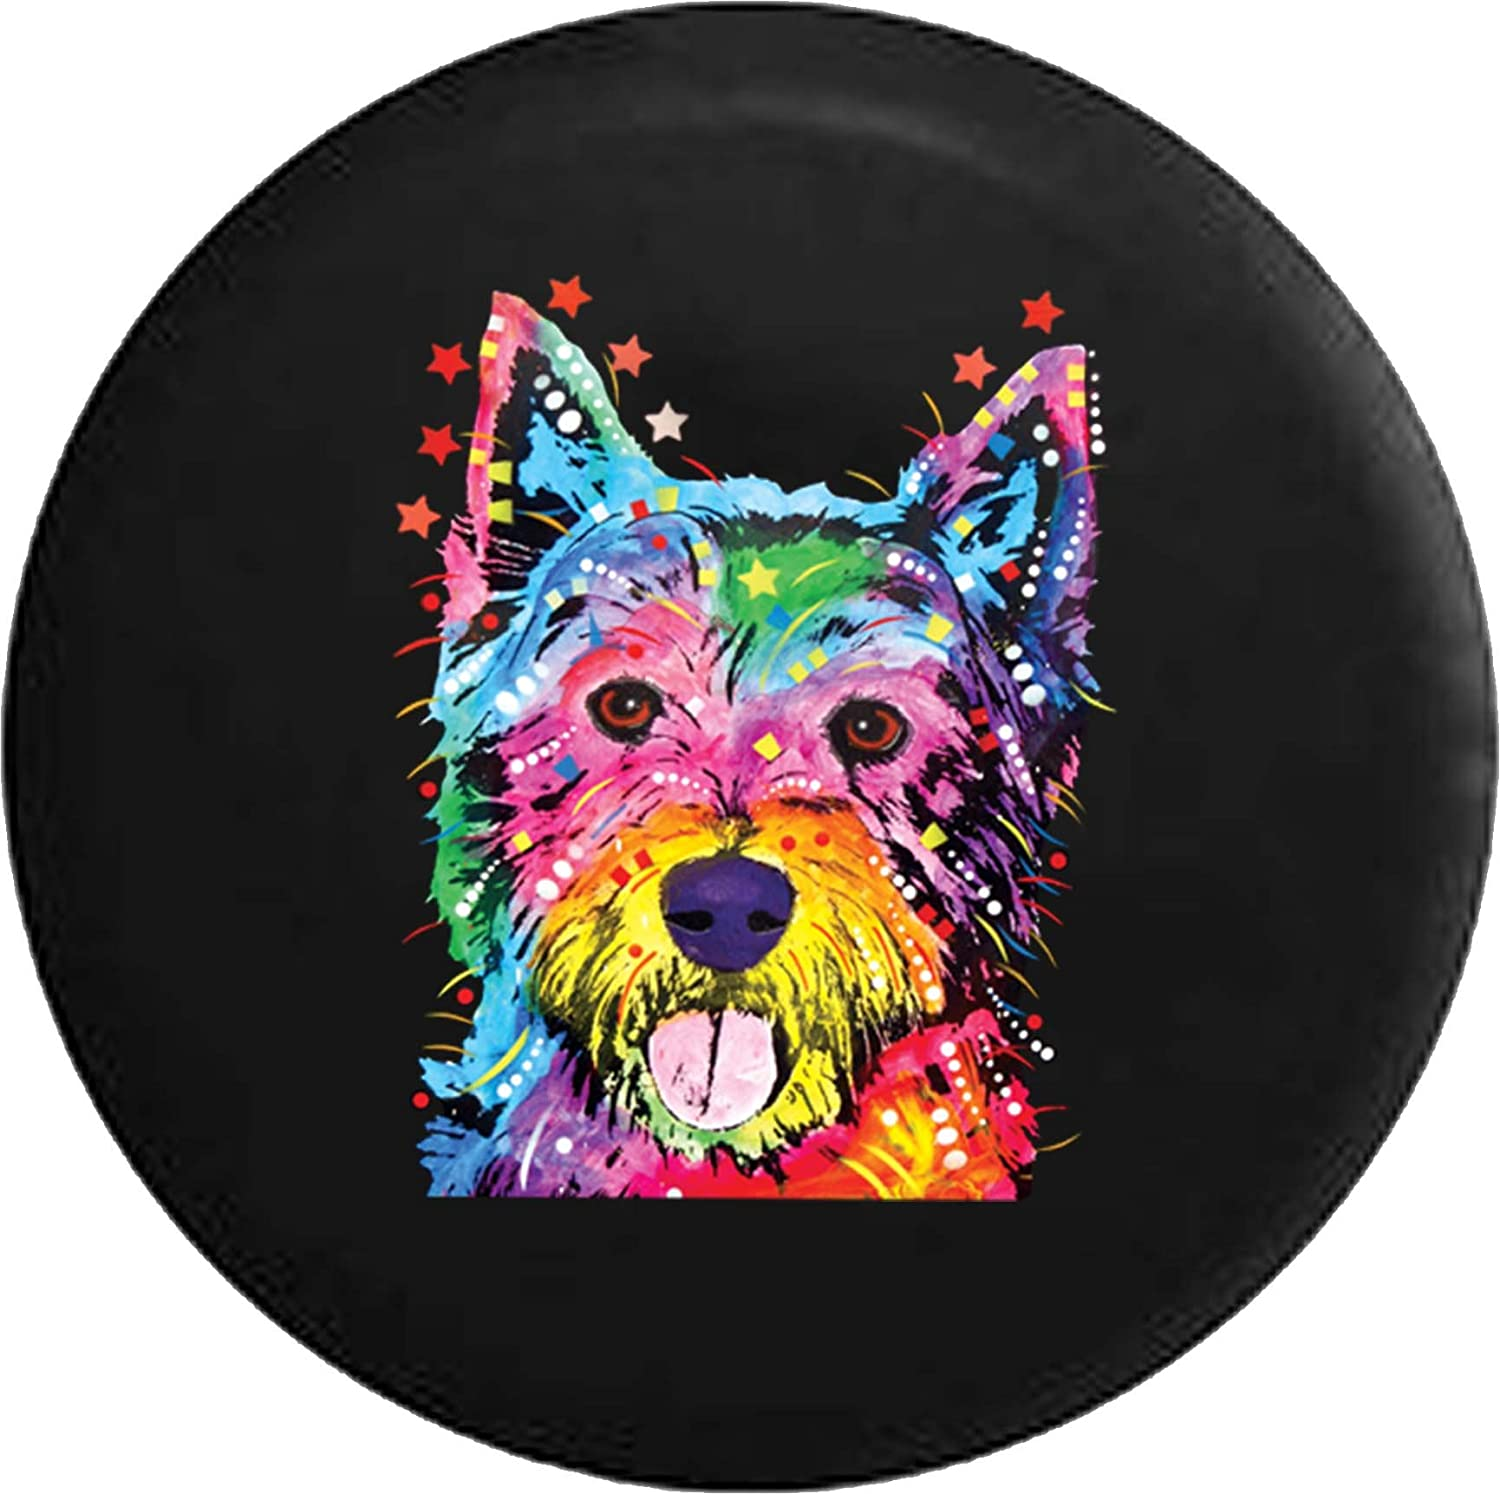 556 Gear Neon Artistic K9 American Lab Pit Bull Staffy Dog Mix Jeep RV Spare Tire Cover Black 33 in